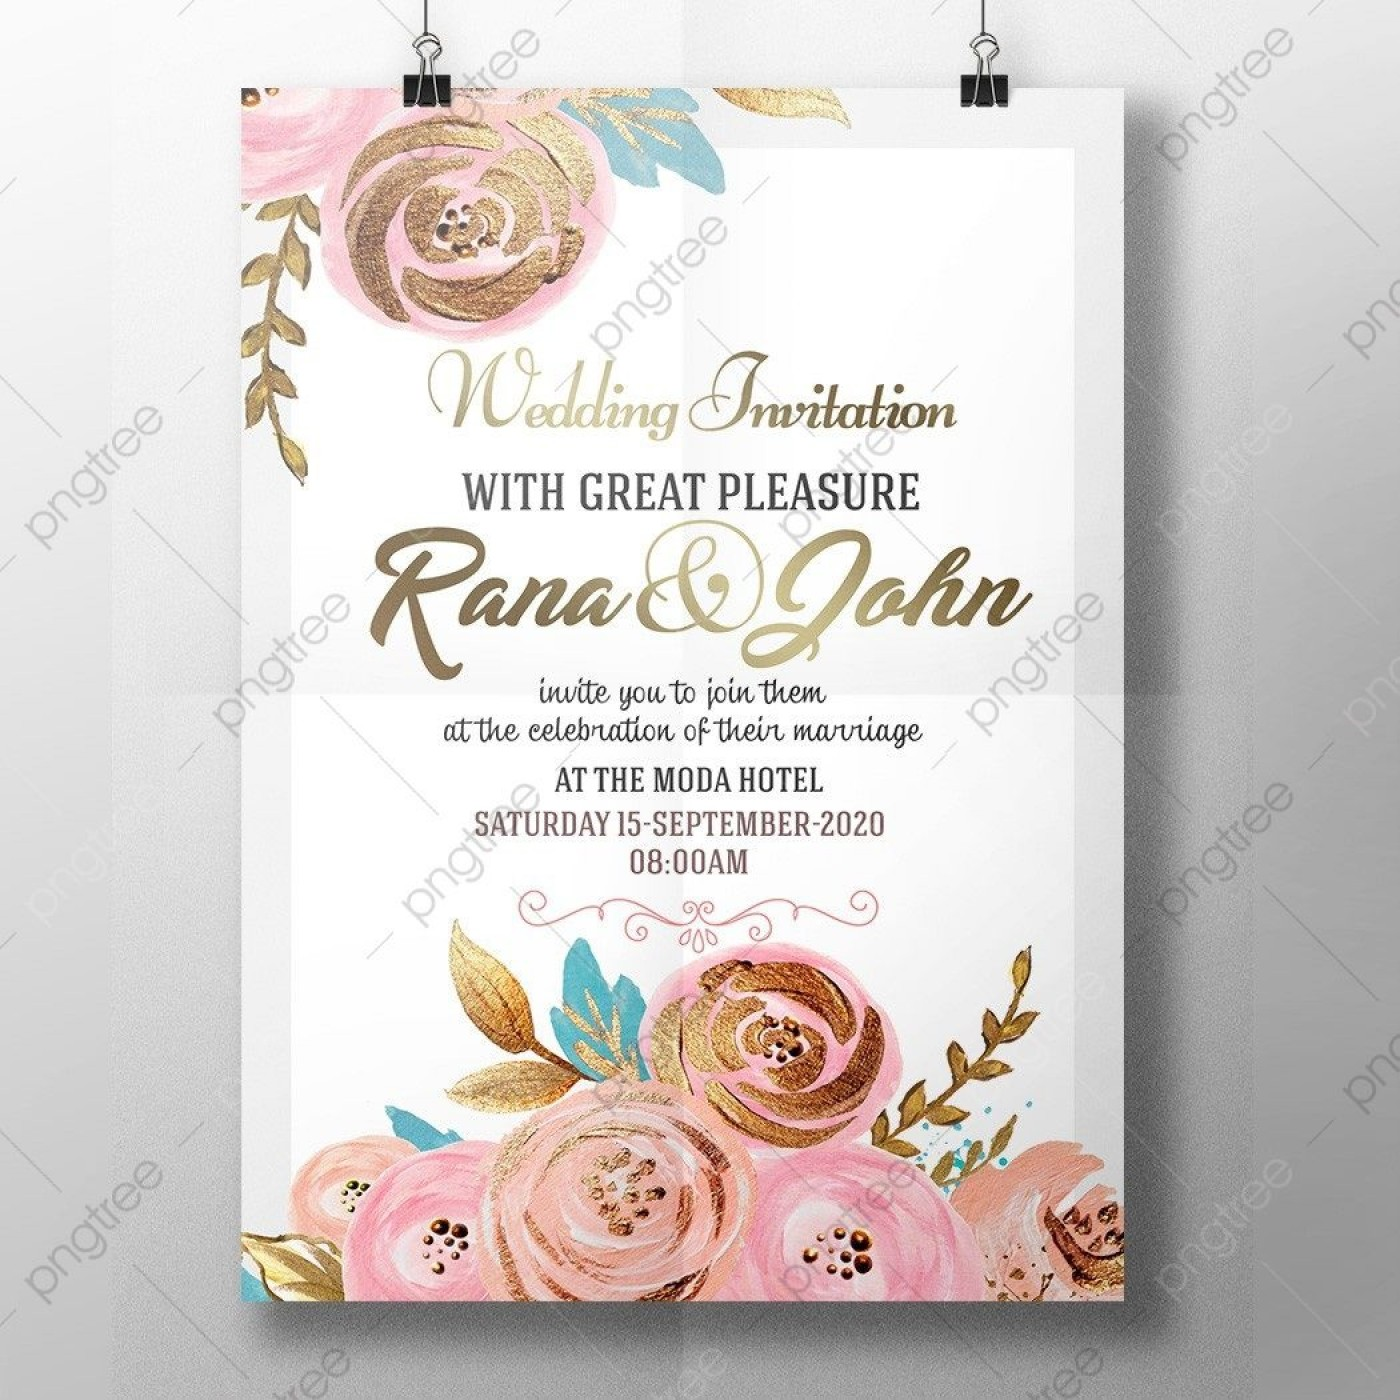 005 Stupendou Free Download Wedding Invitation Template Highest Clarity  Marathi Video Maker Software Editable Rustic For Word1400